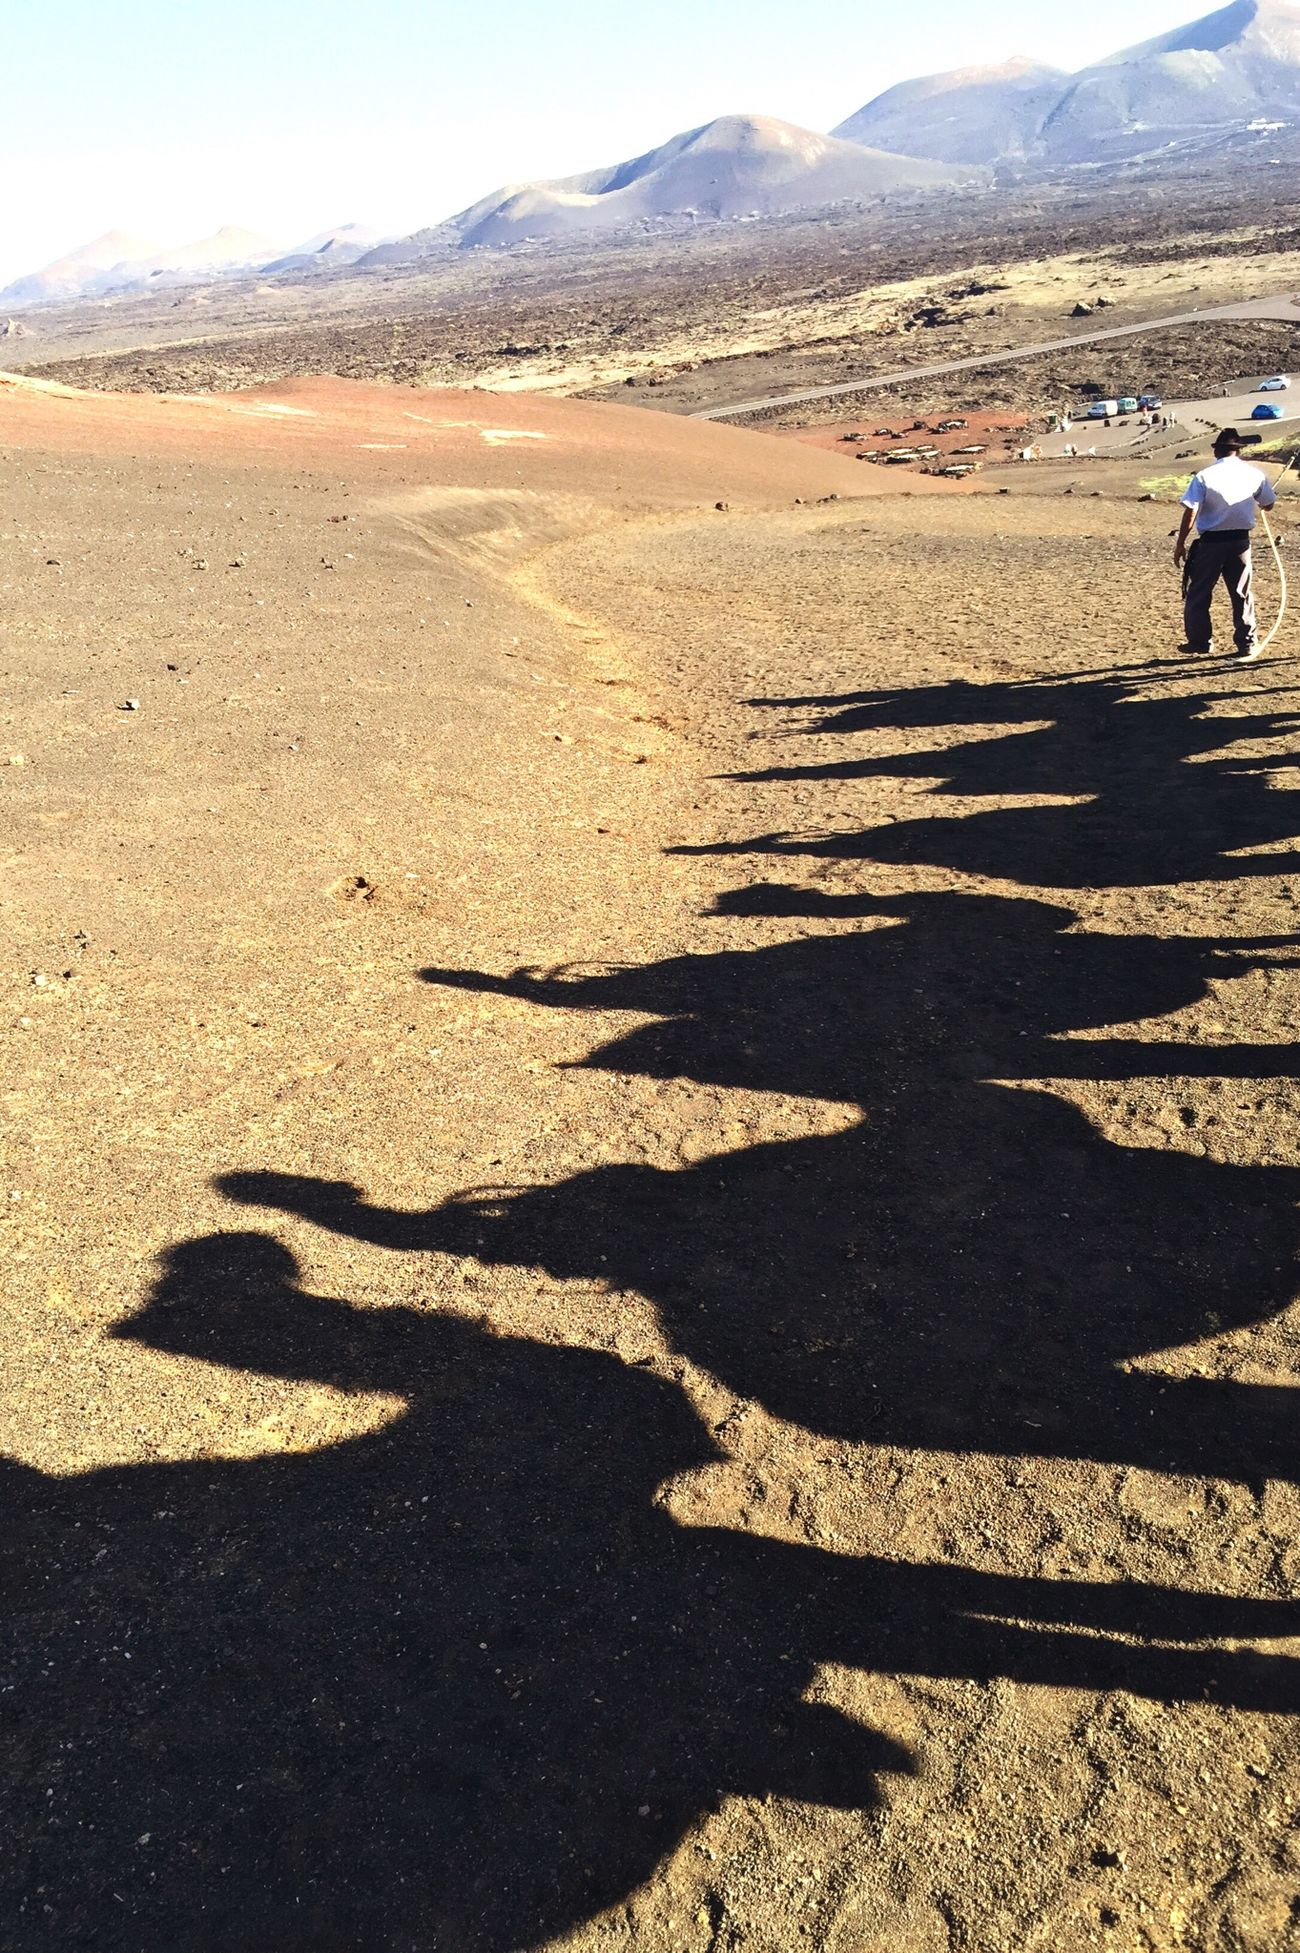 Camels Shadows Camel Riding Lanzarote Camel Shadow On The Move In The Desert Camel Adventure Camel Racing We Love Camels! Telling Stories Differently